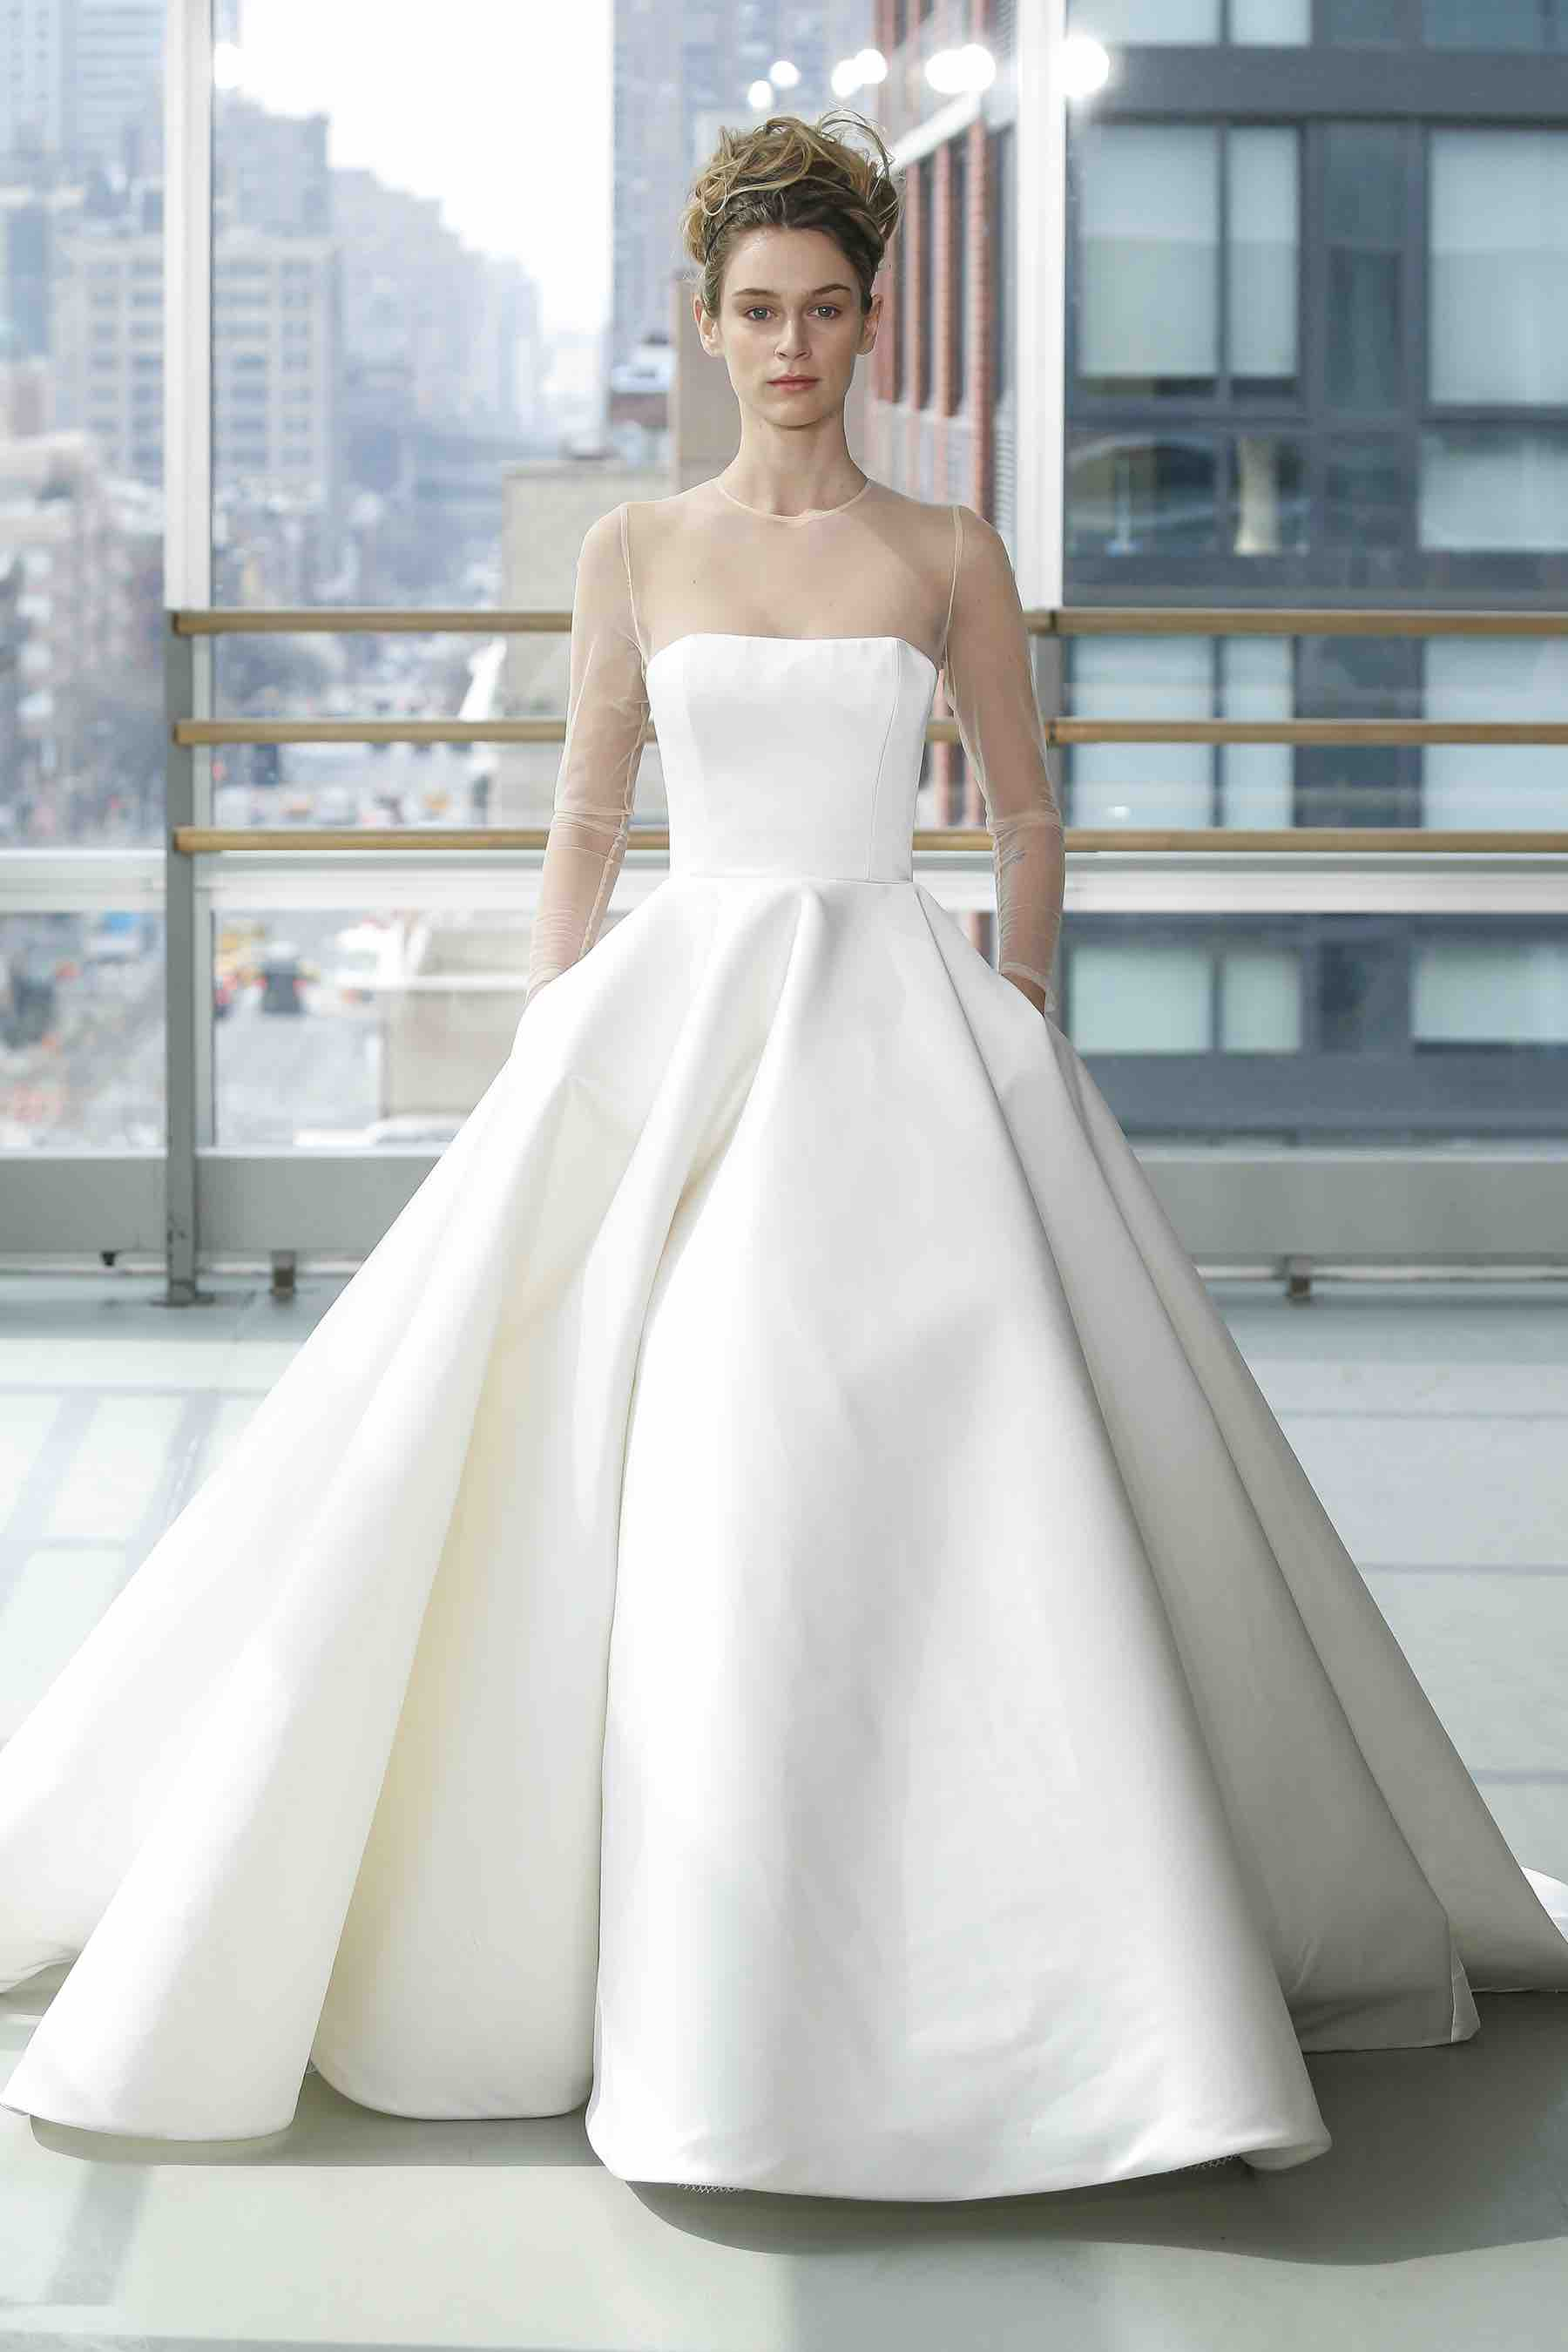 vows-of-style-gracyaccad-image12.jpg